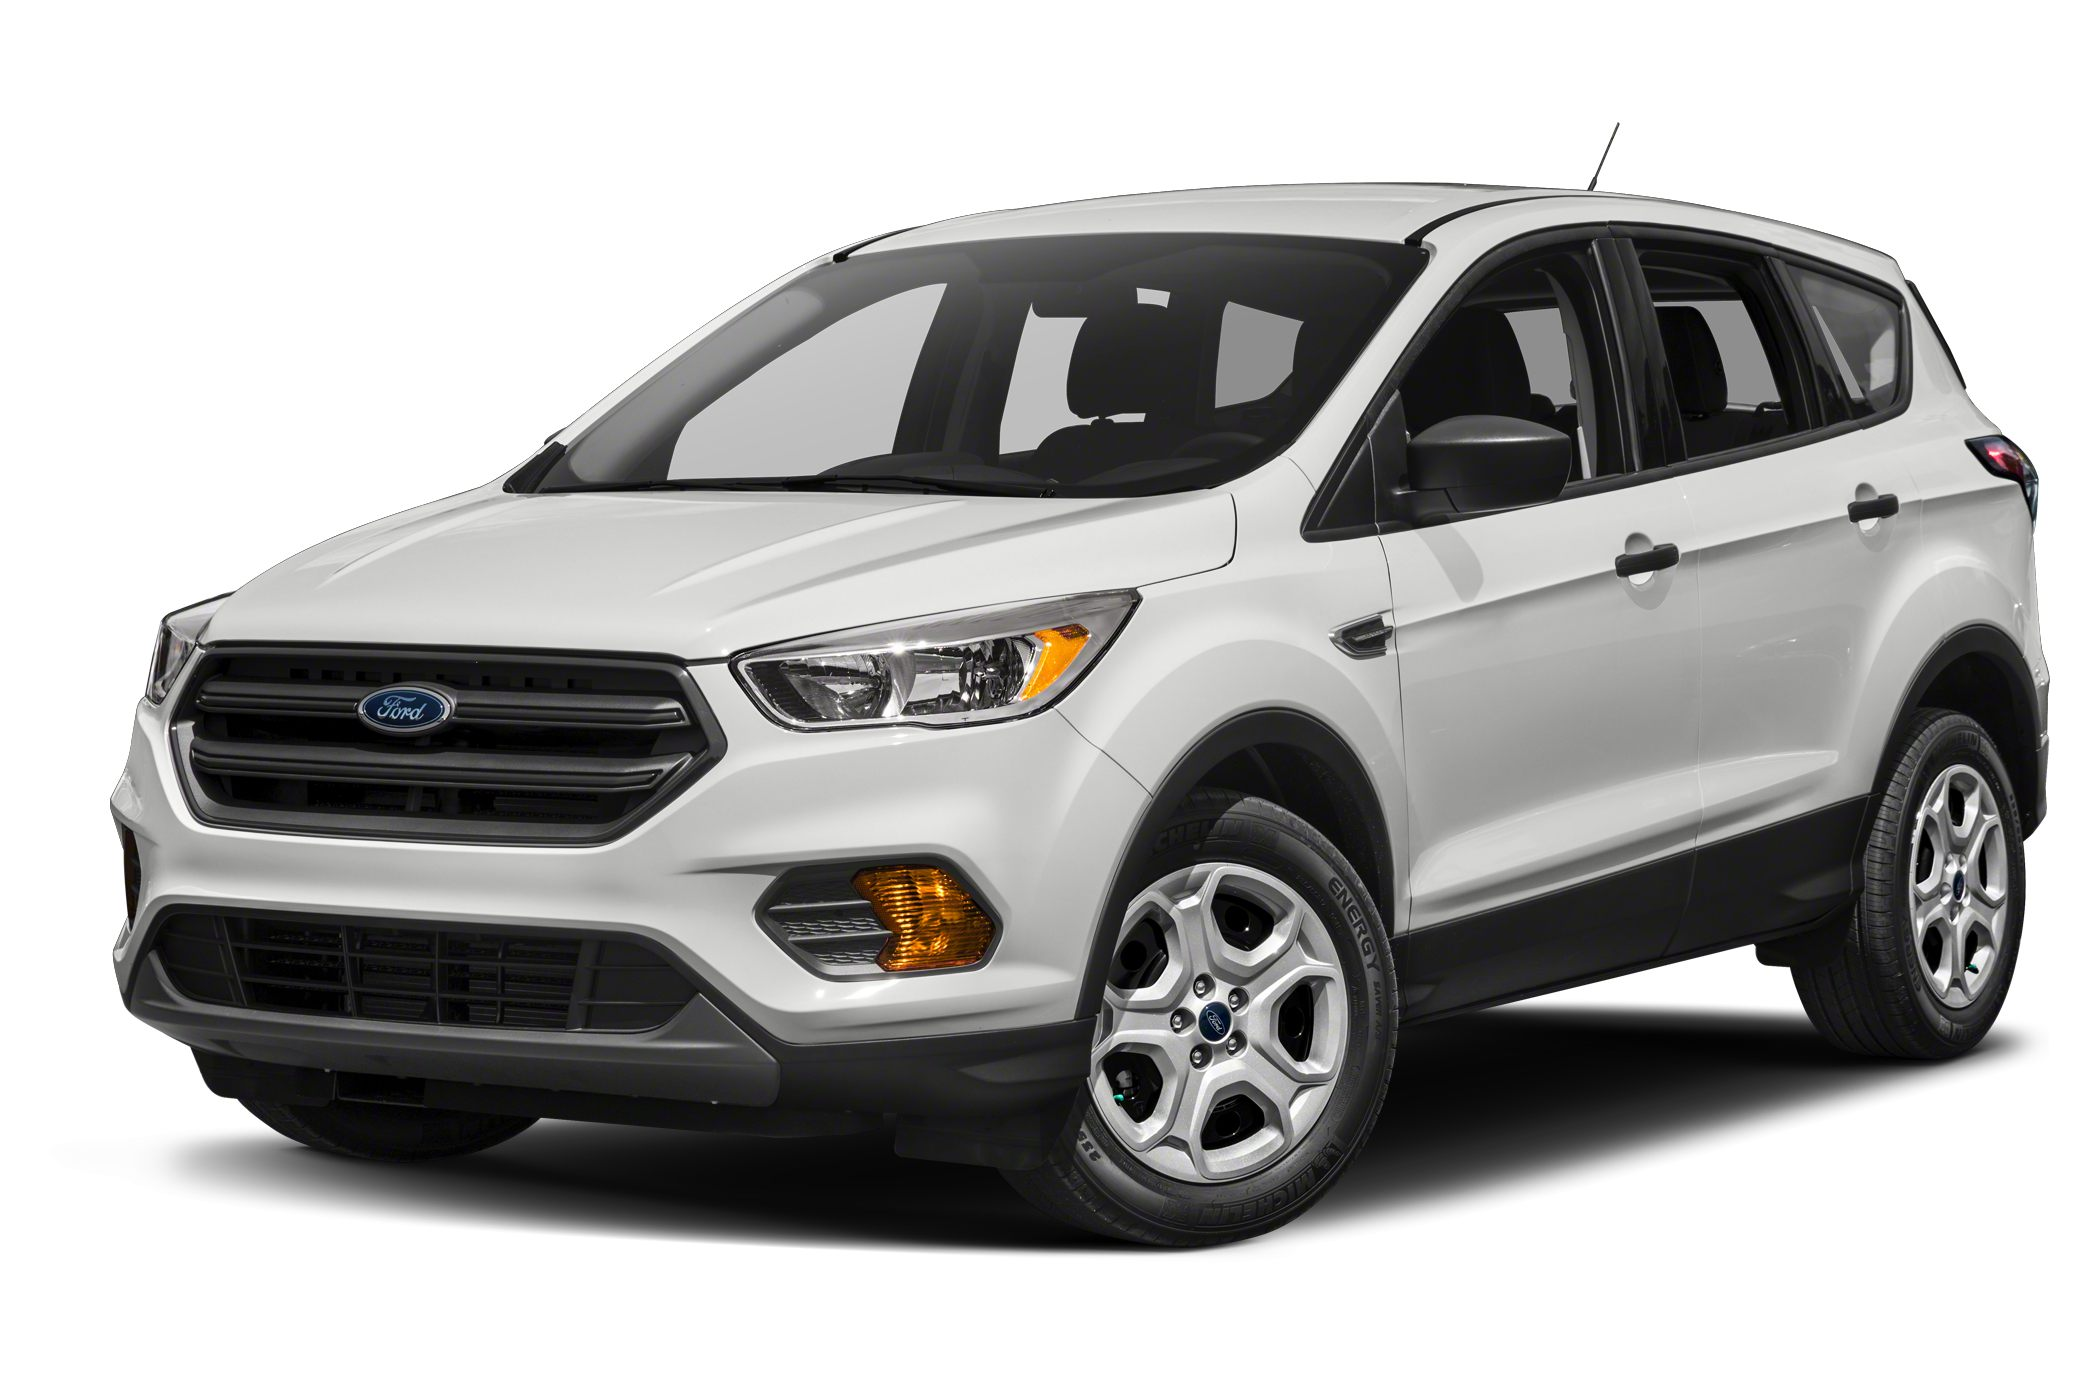 2019 Ford Escape Specs And Prices